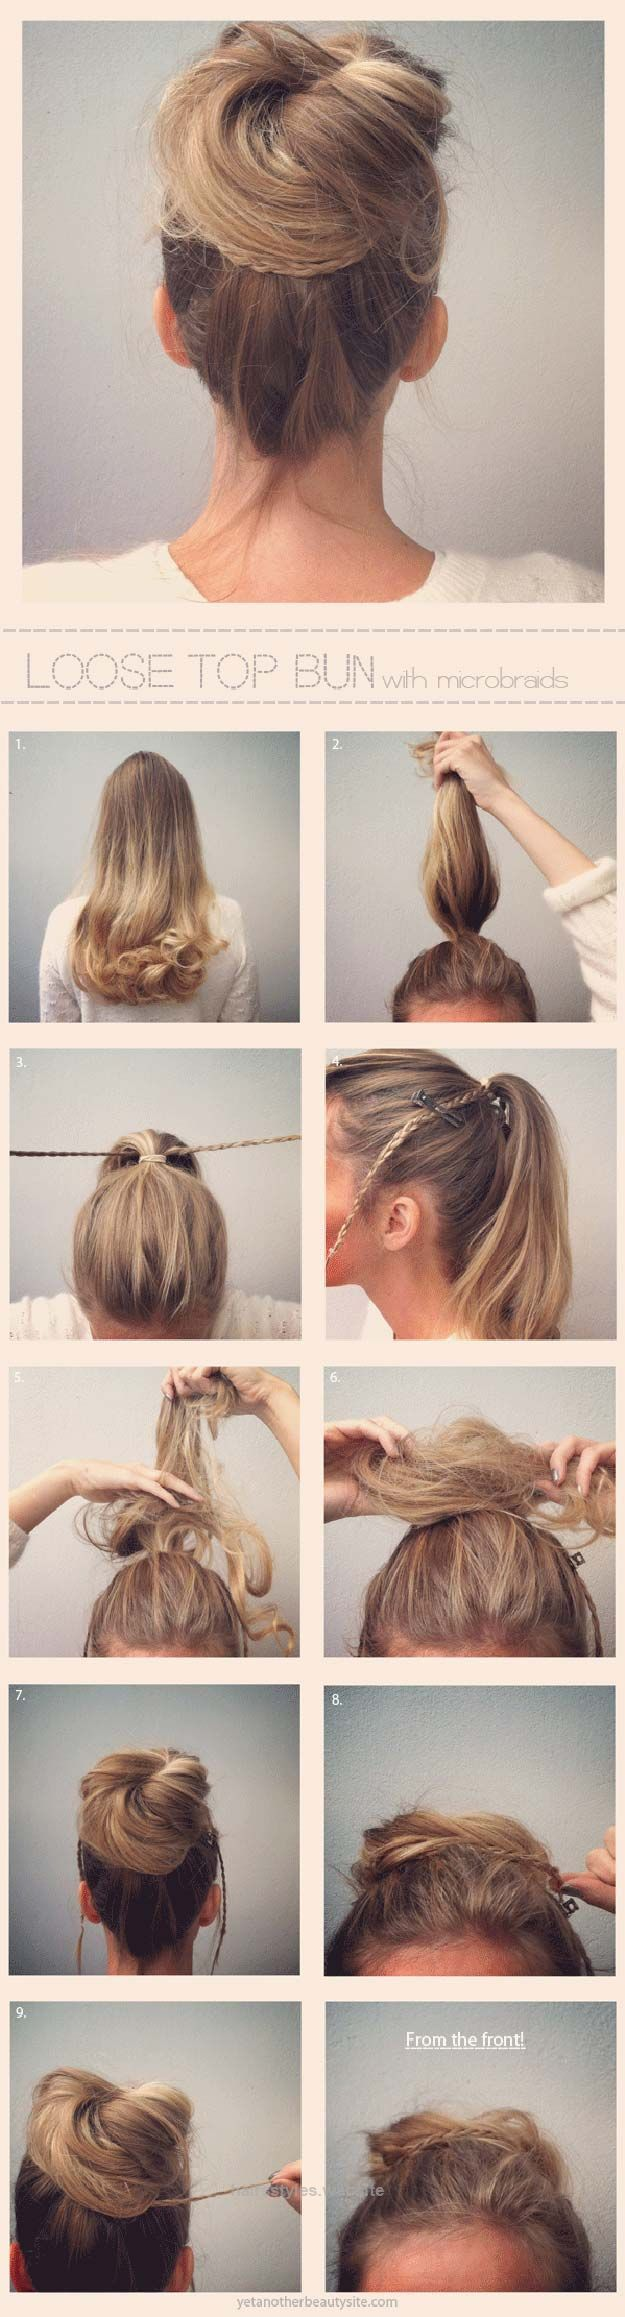 Awesome Easy Hairstyles for Work – Loose Top Bun – Quick and Easy Hairstyles For The Lazy Girl. Great Ideas For Medium Hair, Long Hair, Short Hair, The Undo and Shoulder Length Hair. DIY And Ste ..